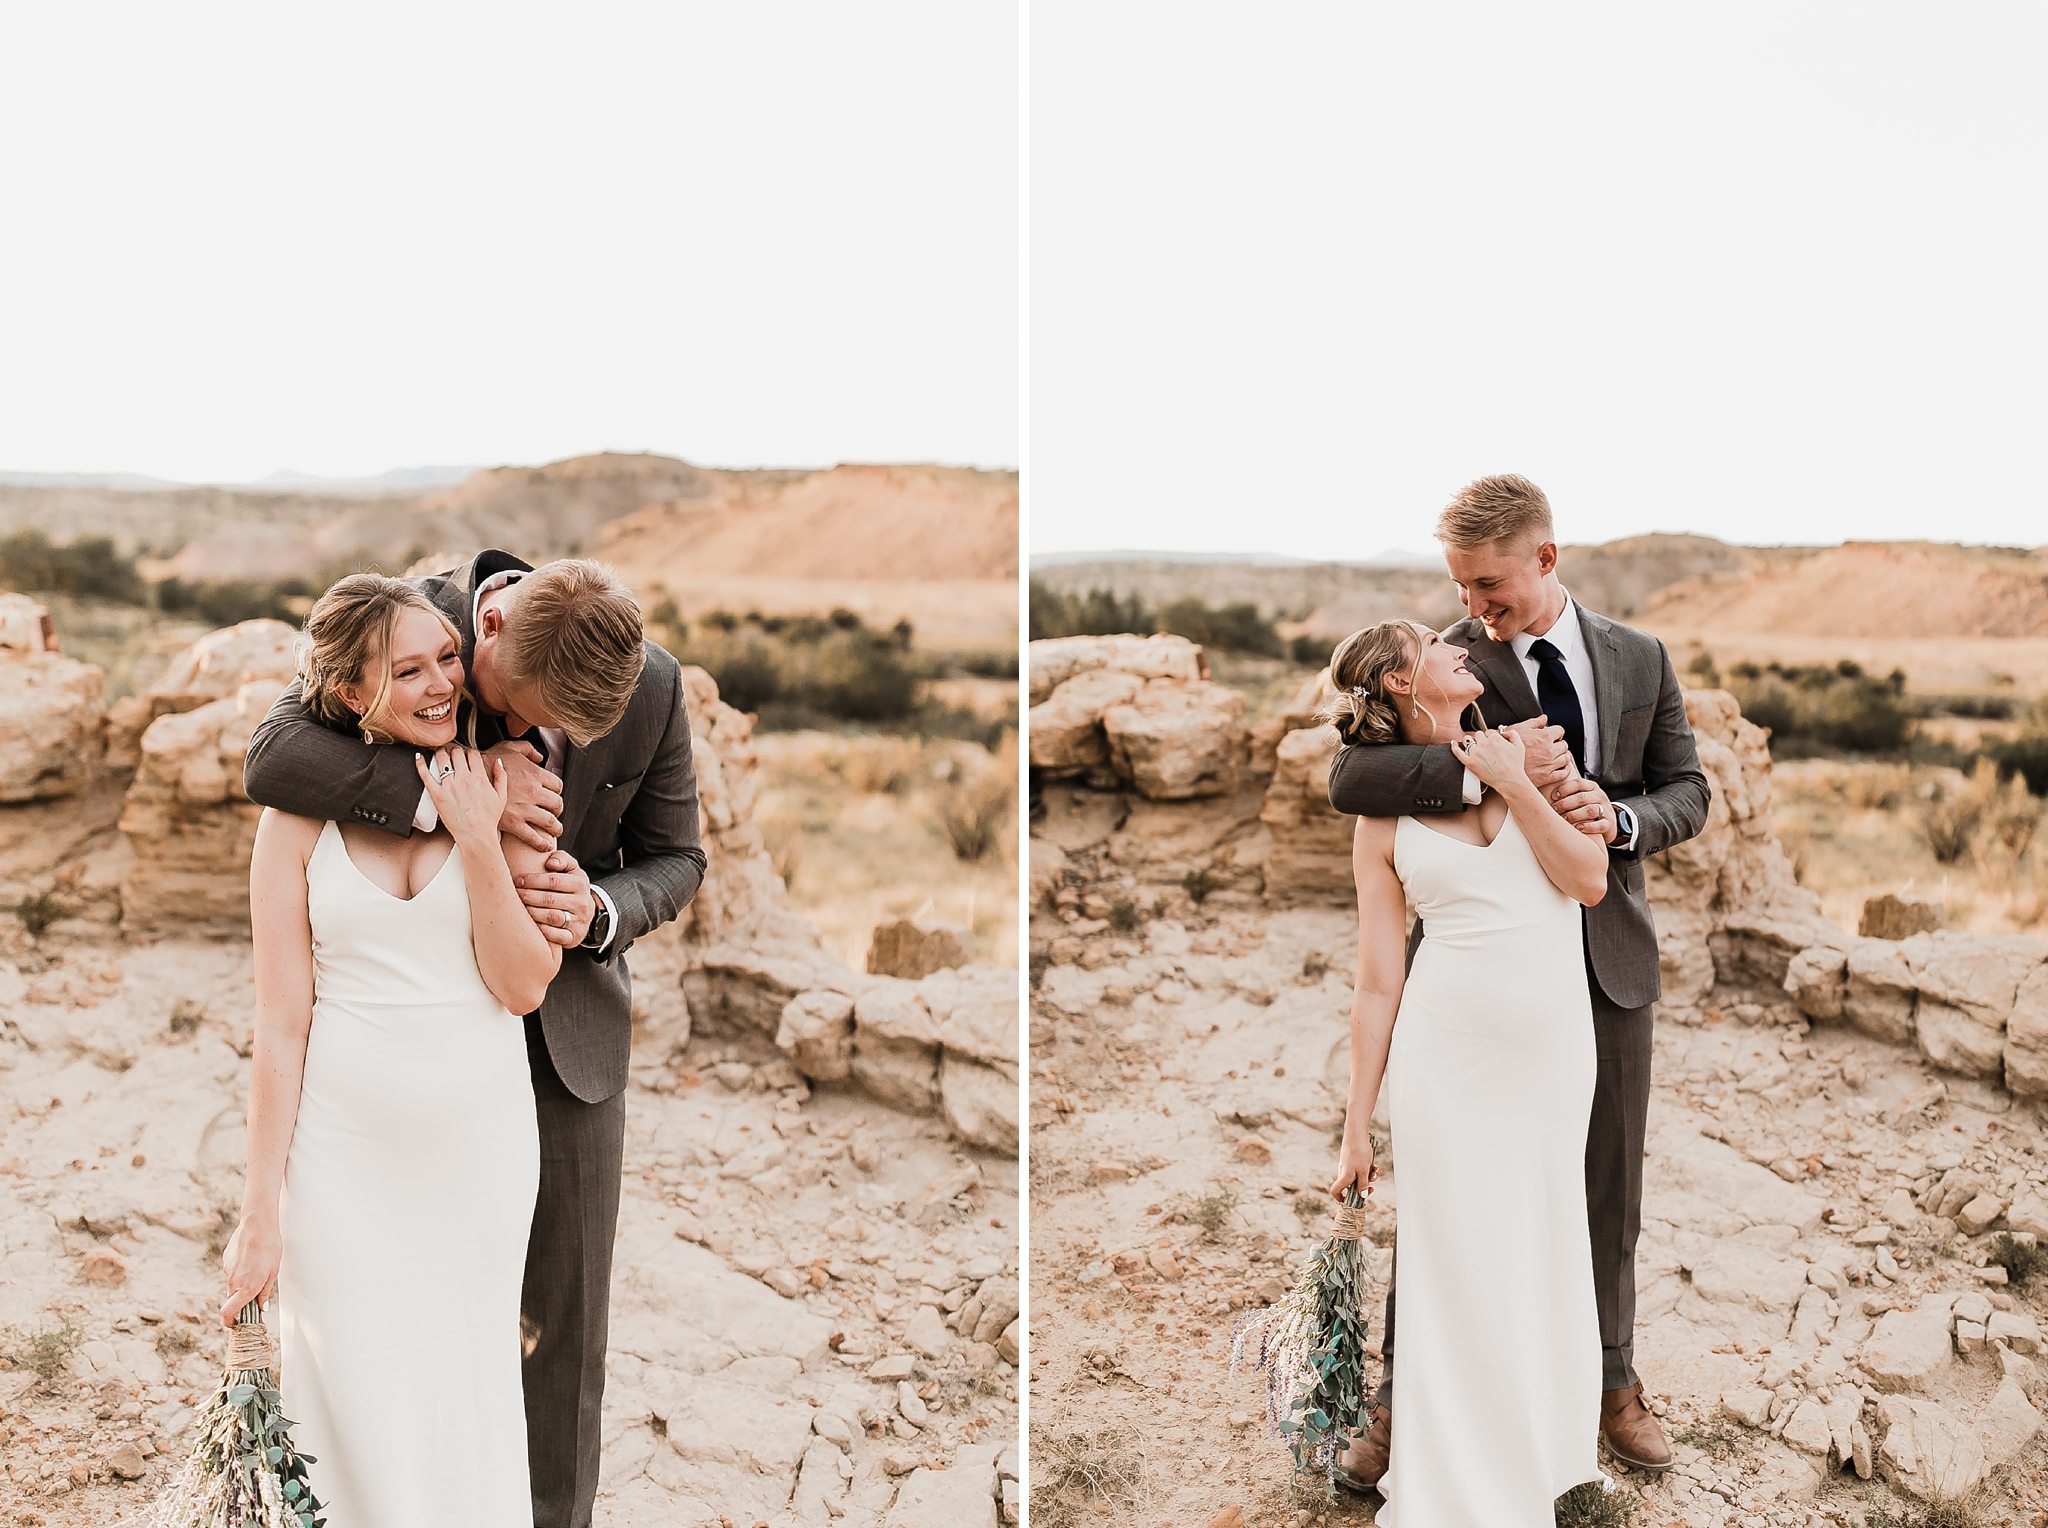 Alicia+lucia+photography+-+albuquerque+wedding+photographer+-+santa+fe+wedding+photography+-+new+mexico+wedding+photographer+-+new+mexico+wedding+-+new+mexico+elopement+-+elopment+-+mountain+elopement_0013.jpg